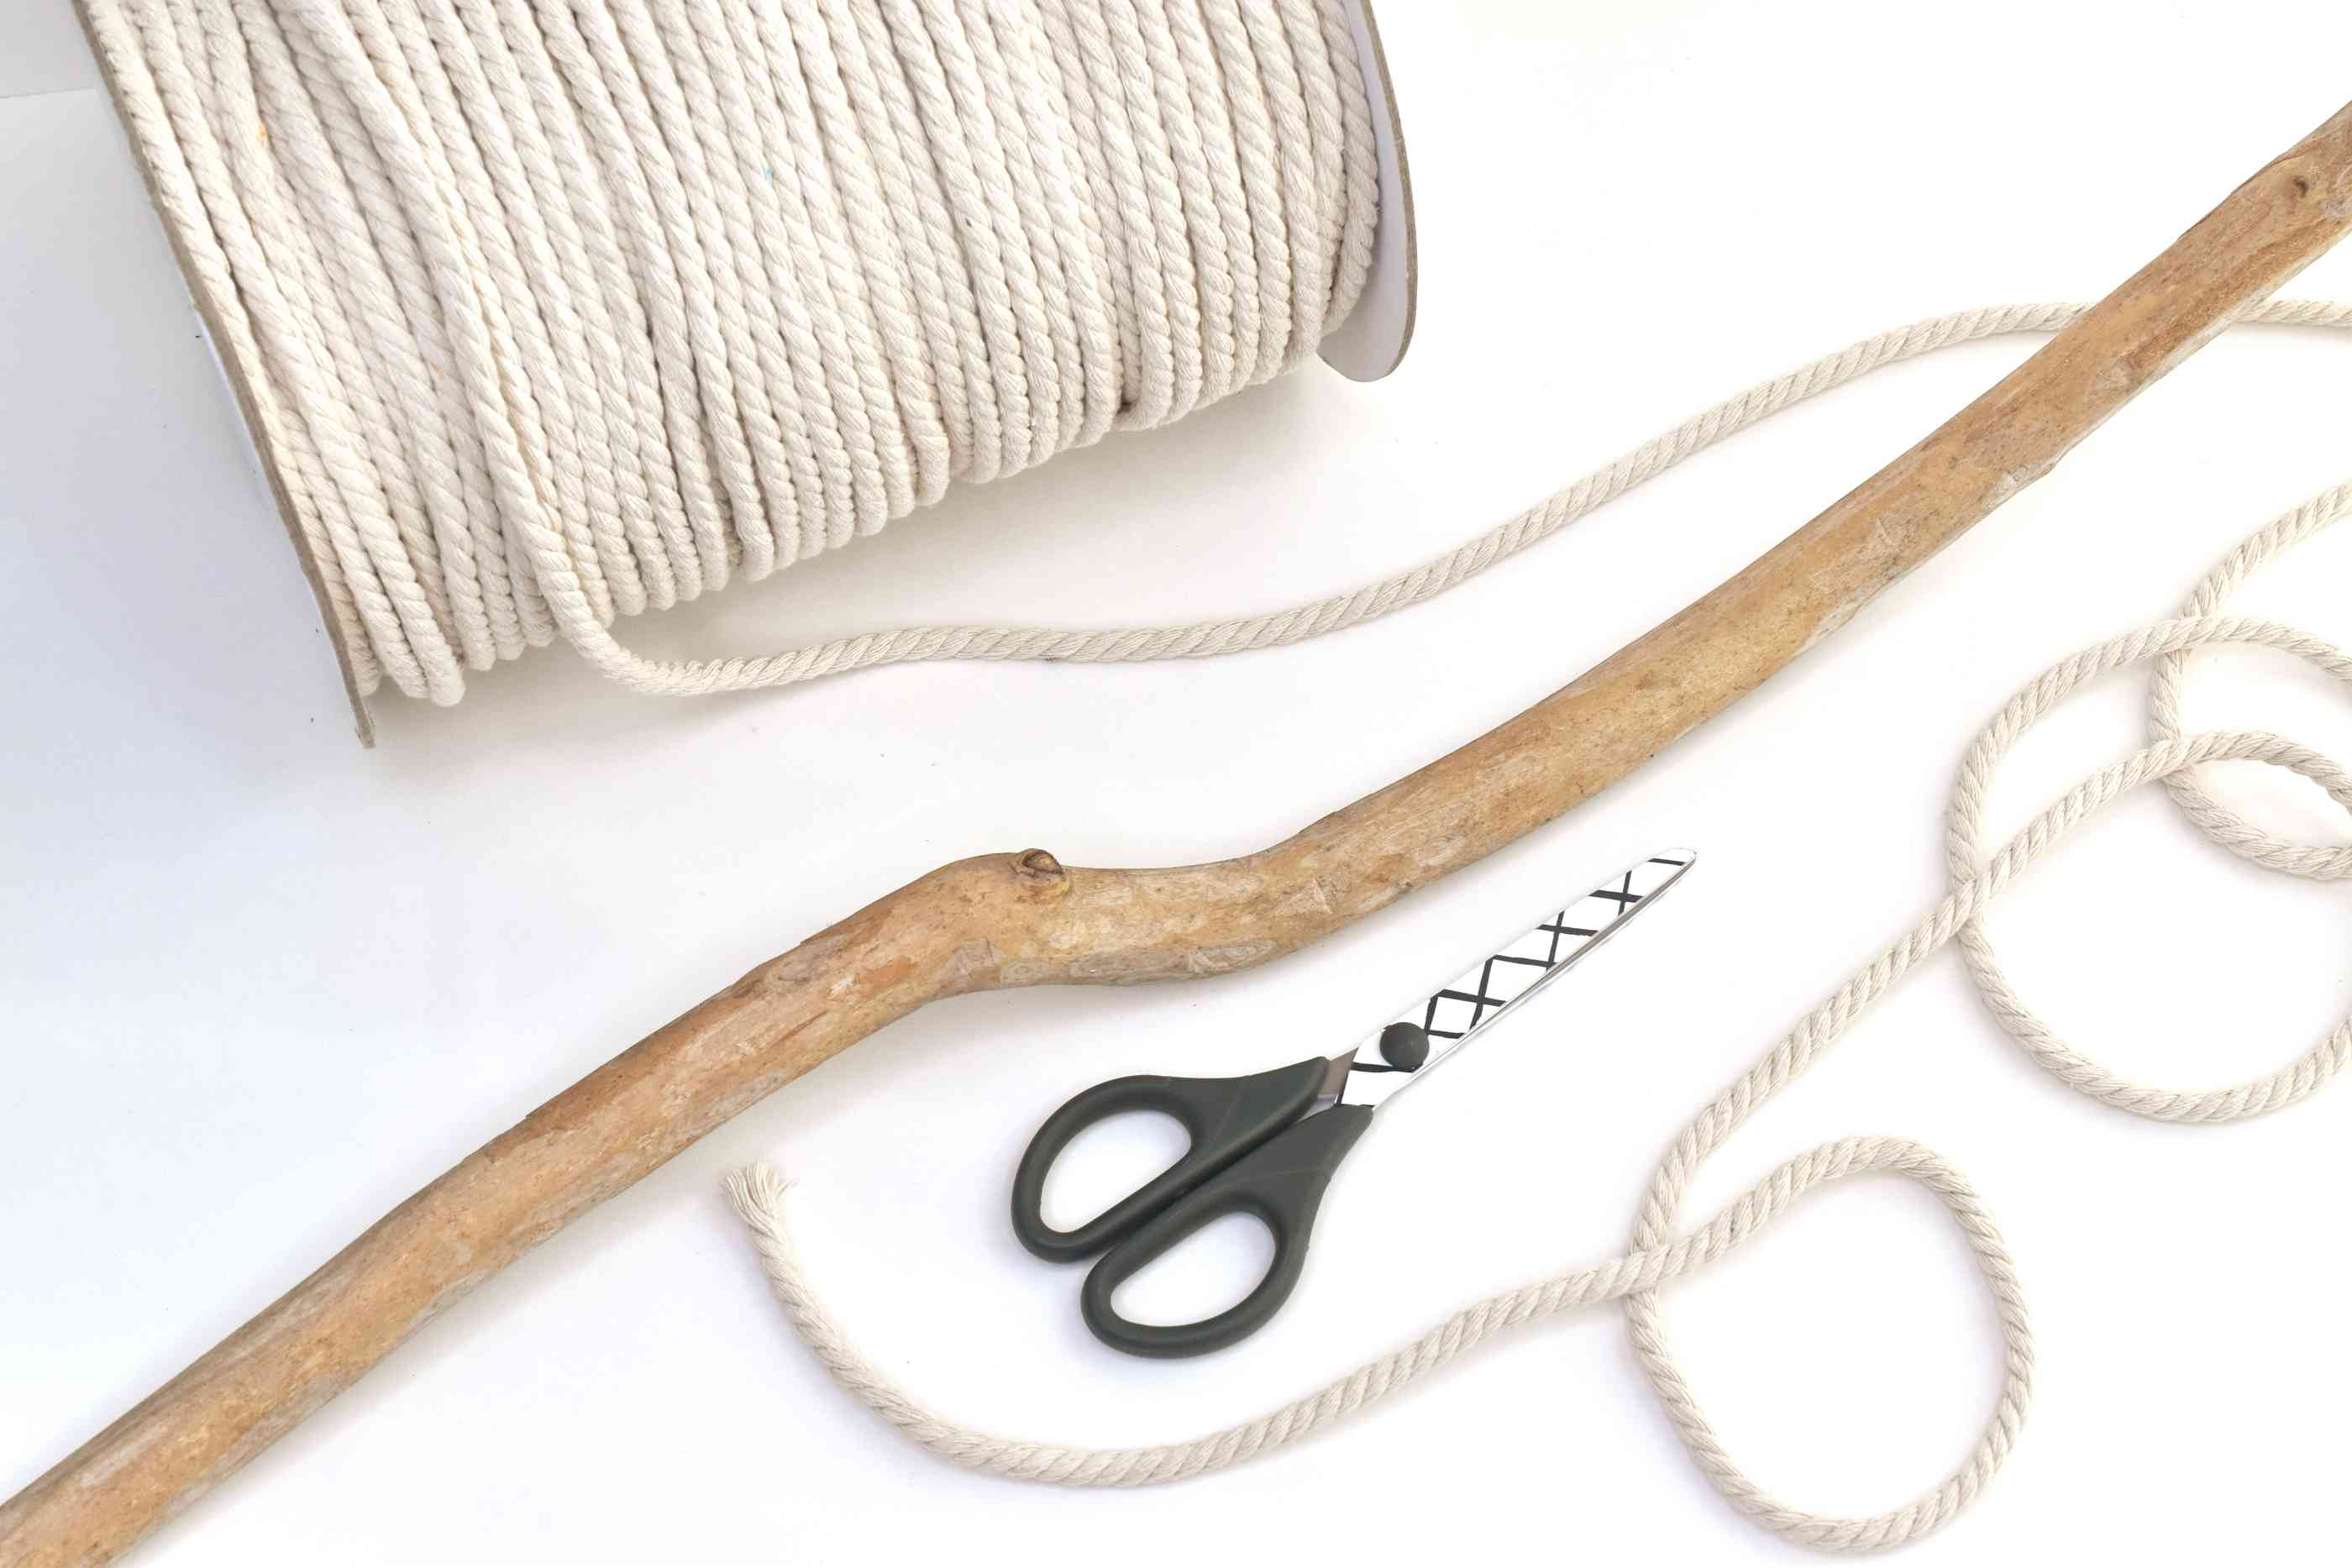 Supplies for making a macrame curtain with rope and a branch